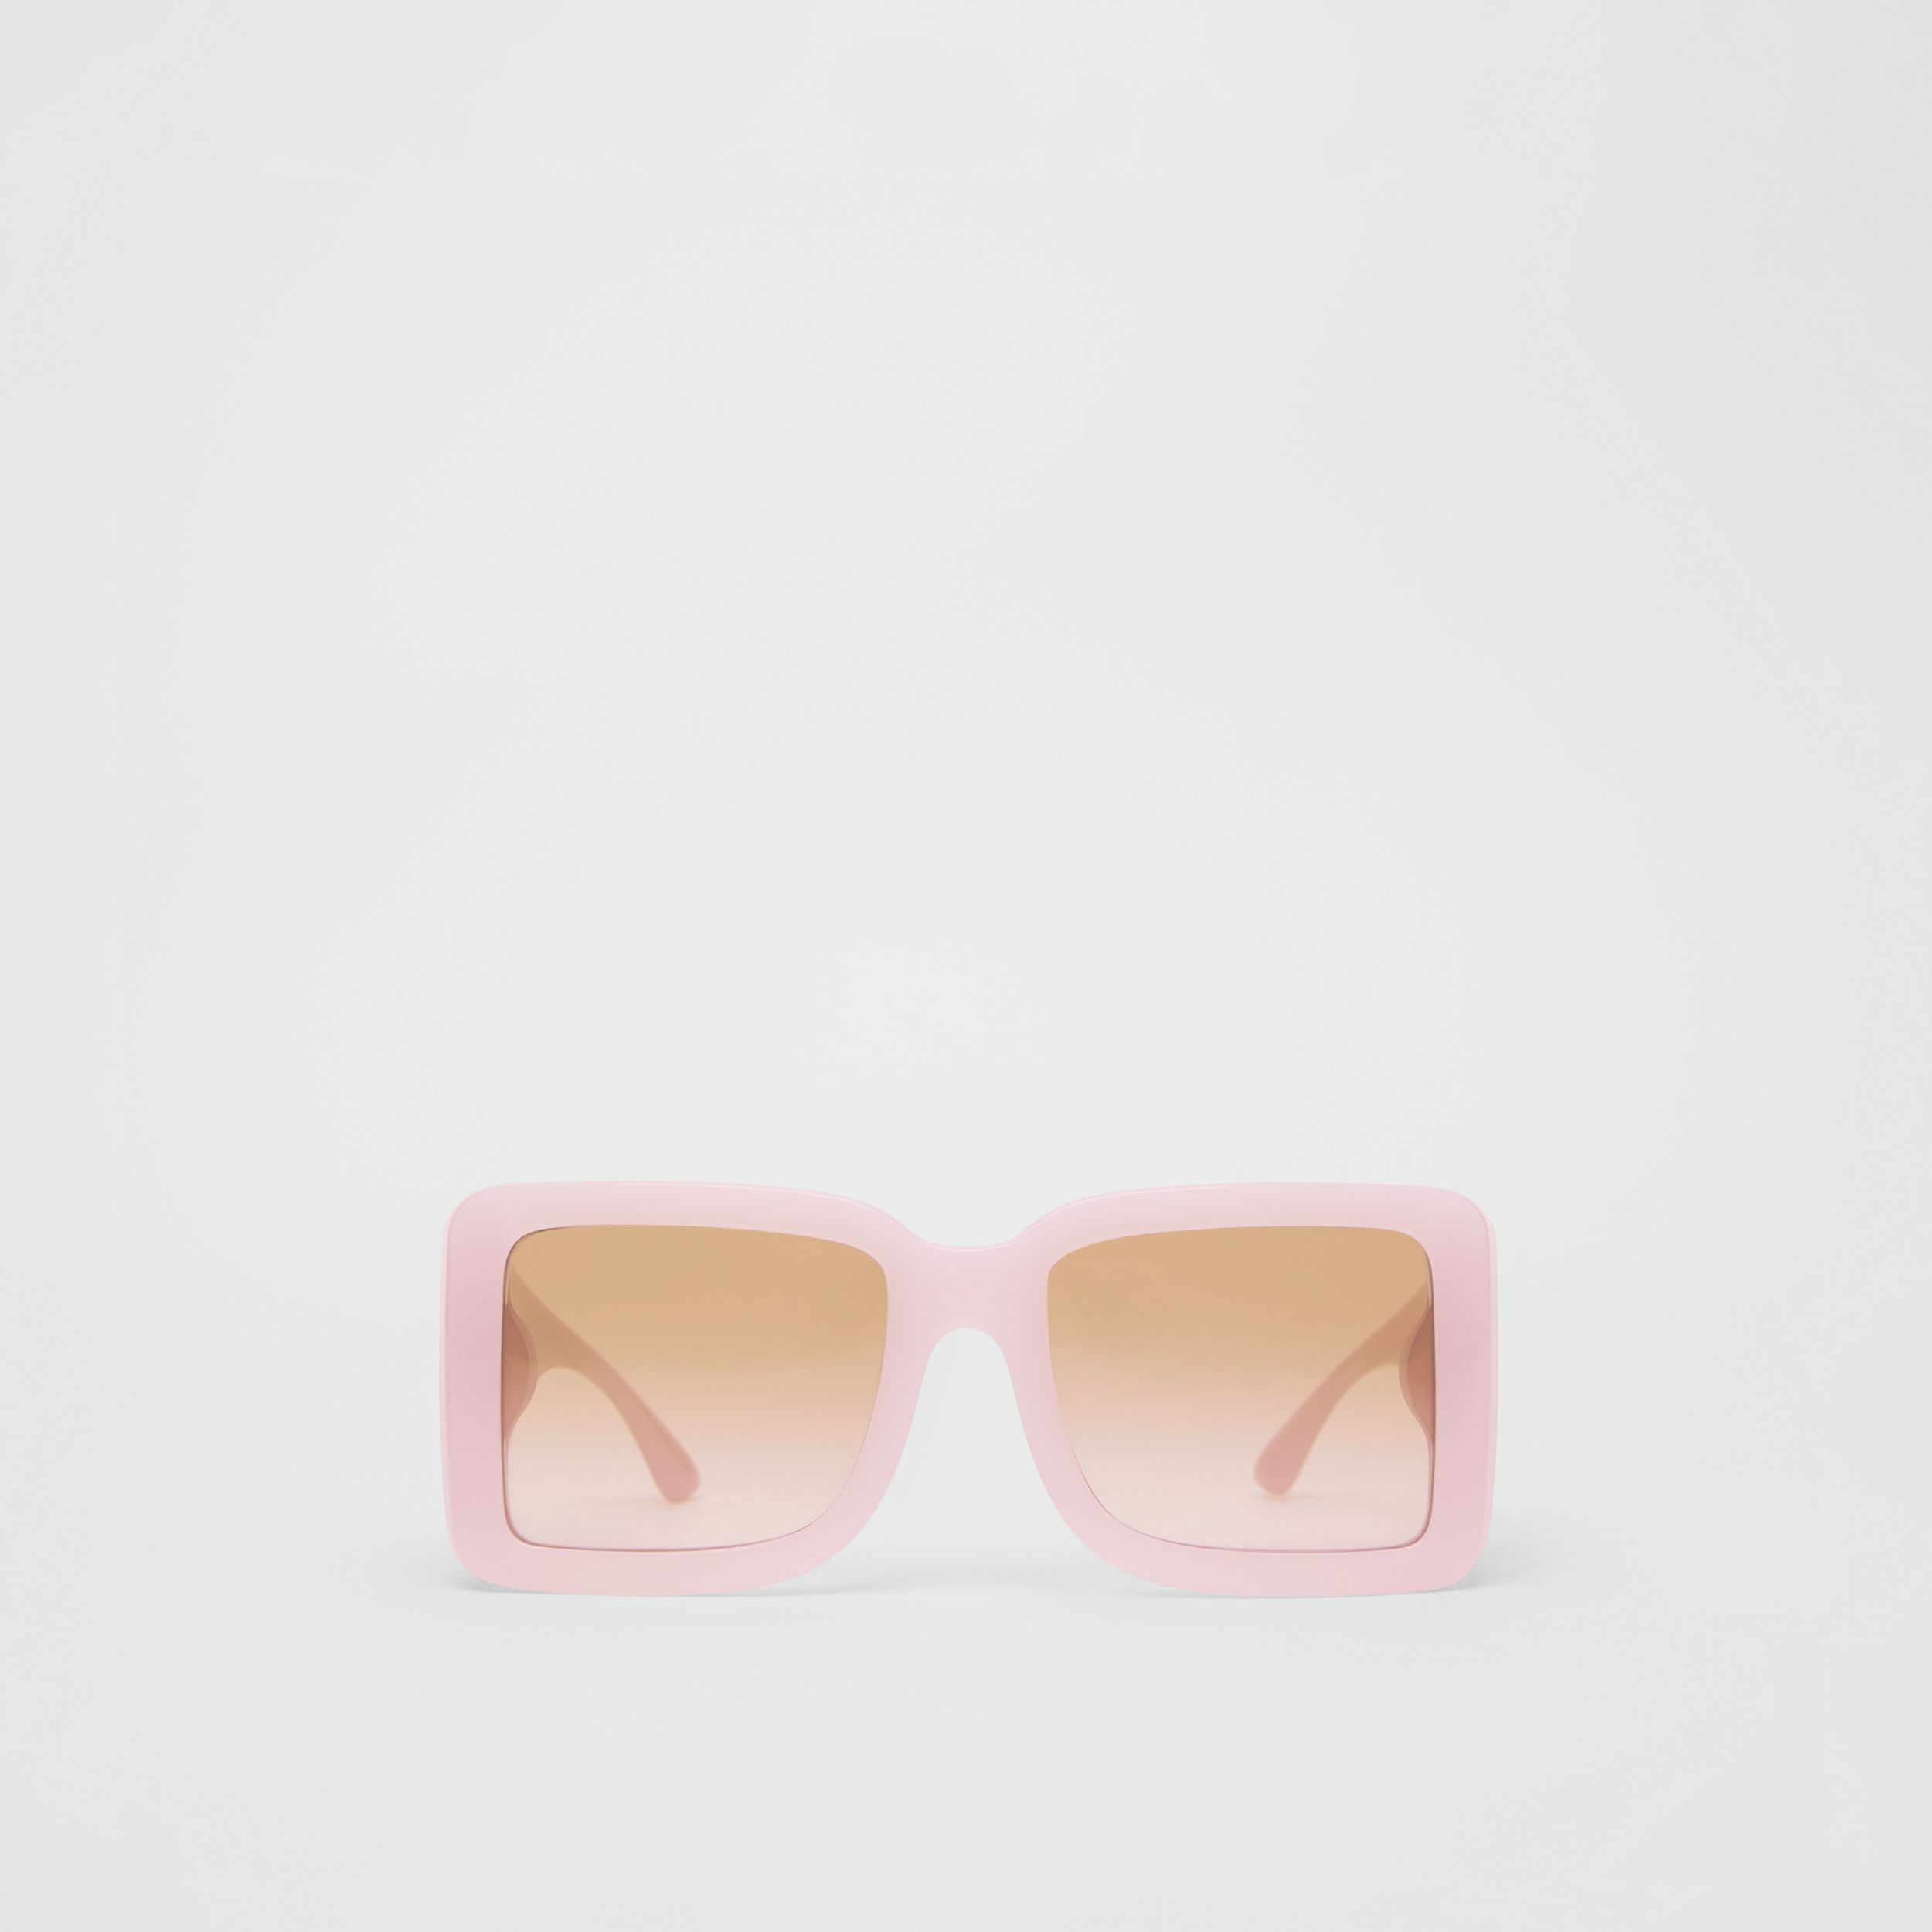 B Motif Square Frame Sunglasses in Lilac - Women | Burberry - 1